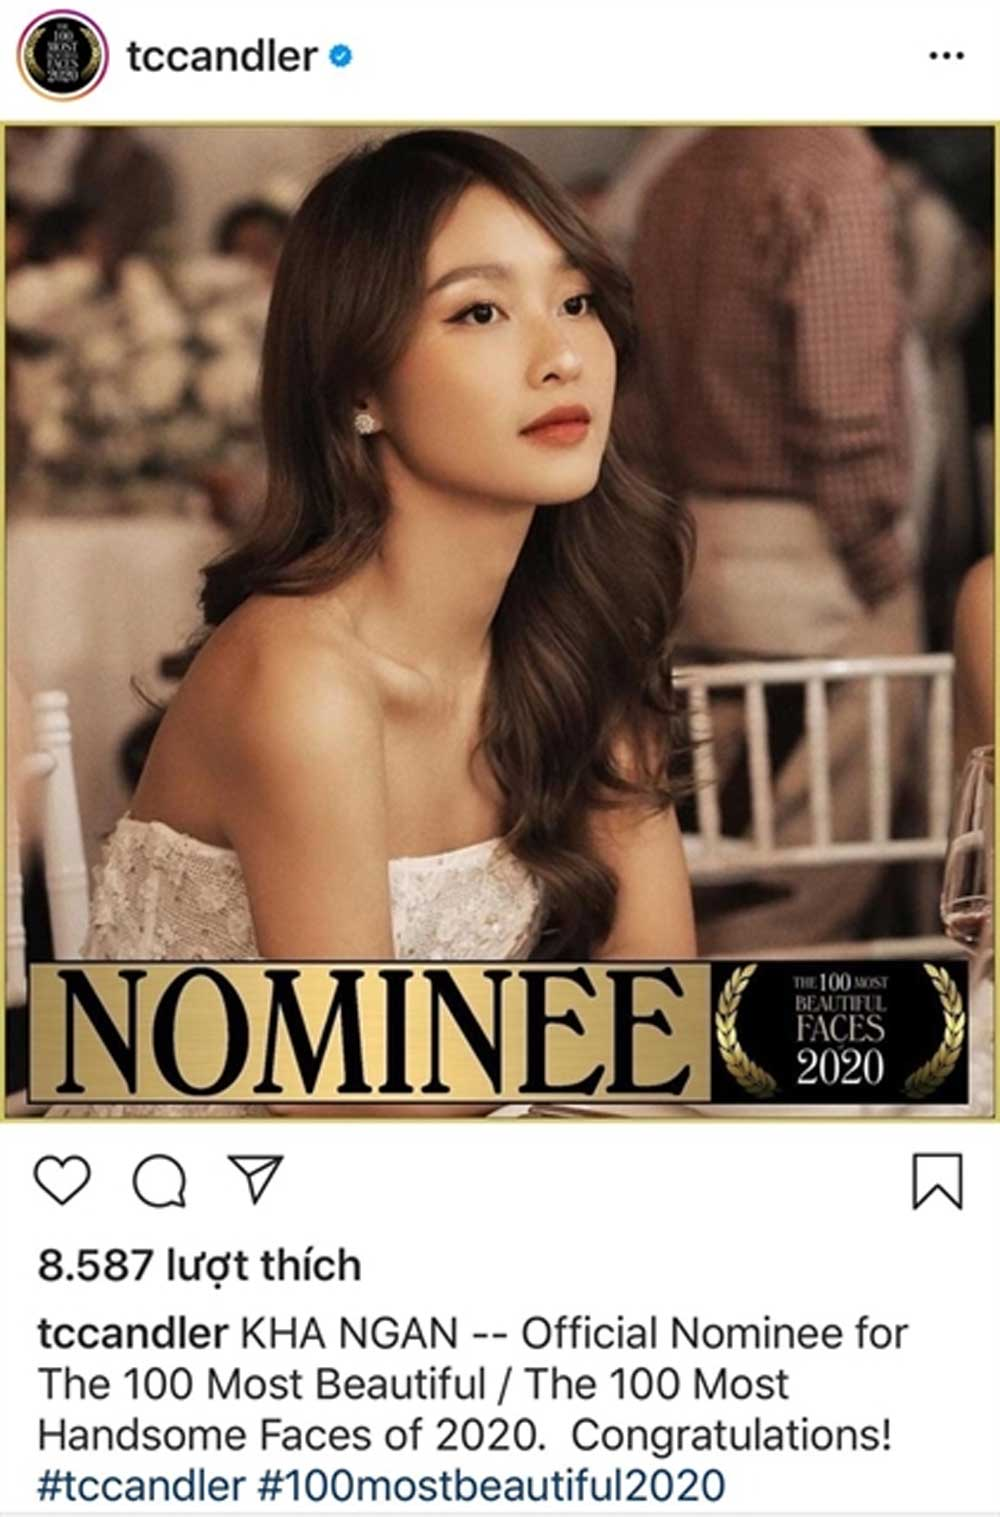 Vietnamese stars, 100 most beautiful faces list, TC Candler, art critic website, Vietnamese nominees, people from around the world